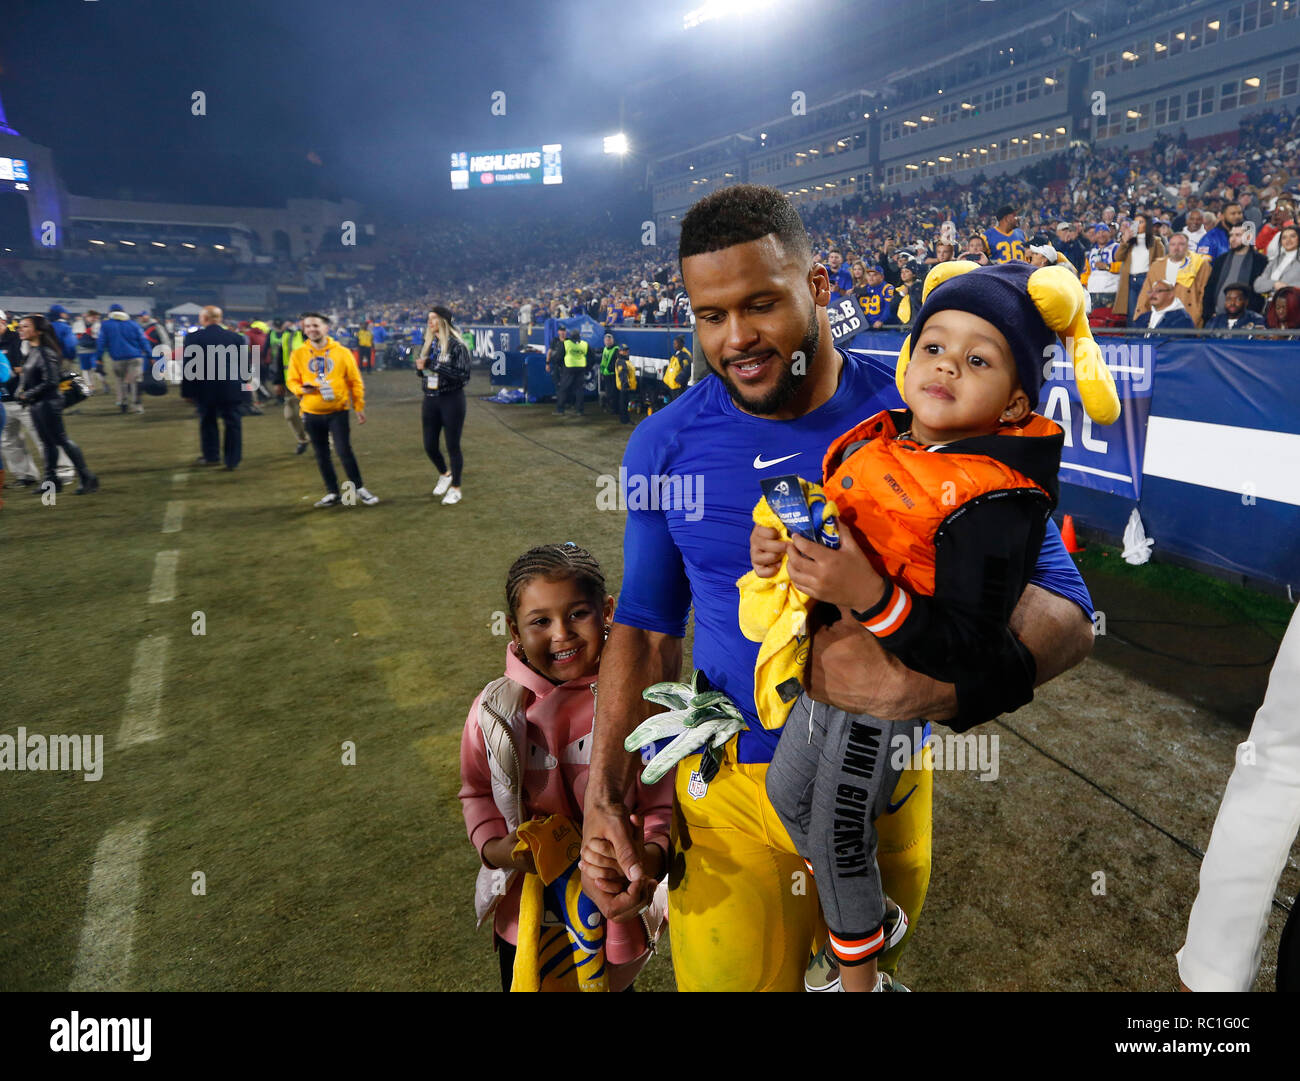 Los Angeles California Usa January 12 2019 Los Angeles Rams Defensive End Aaron Donald 99 Celebrates With His Kids After The Nfc Divisional Round Playoff Game Between The Game Between The Los